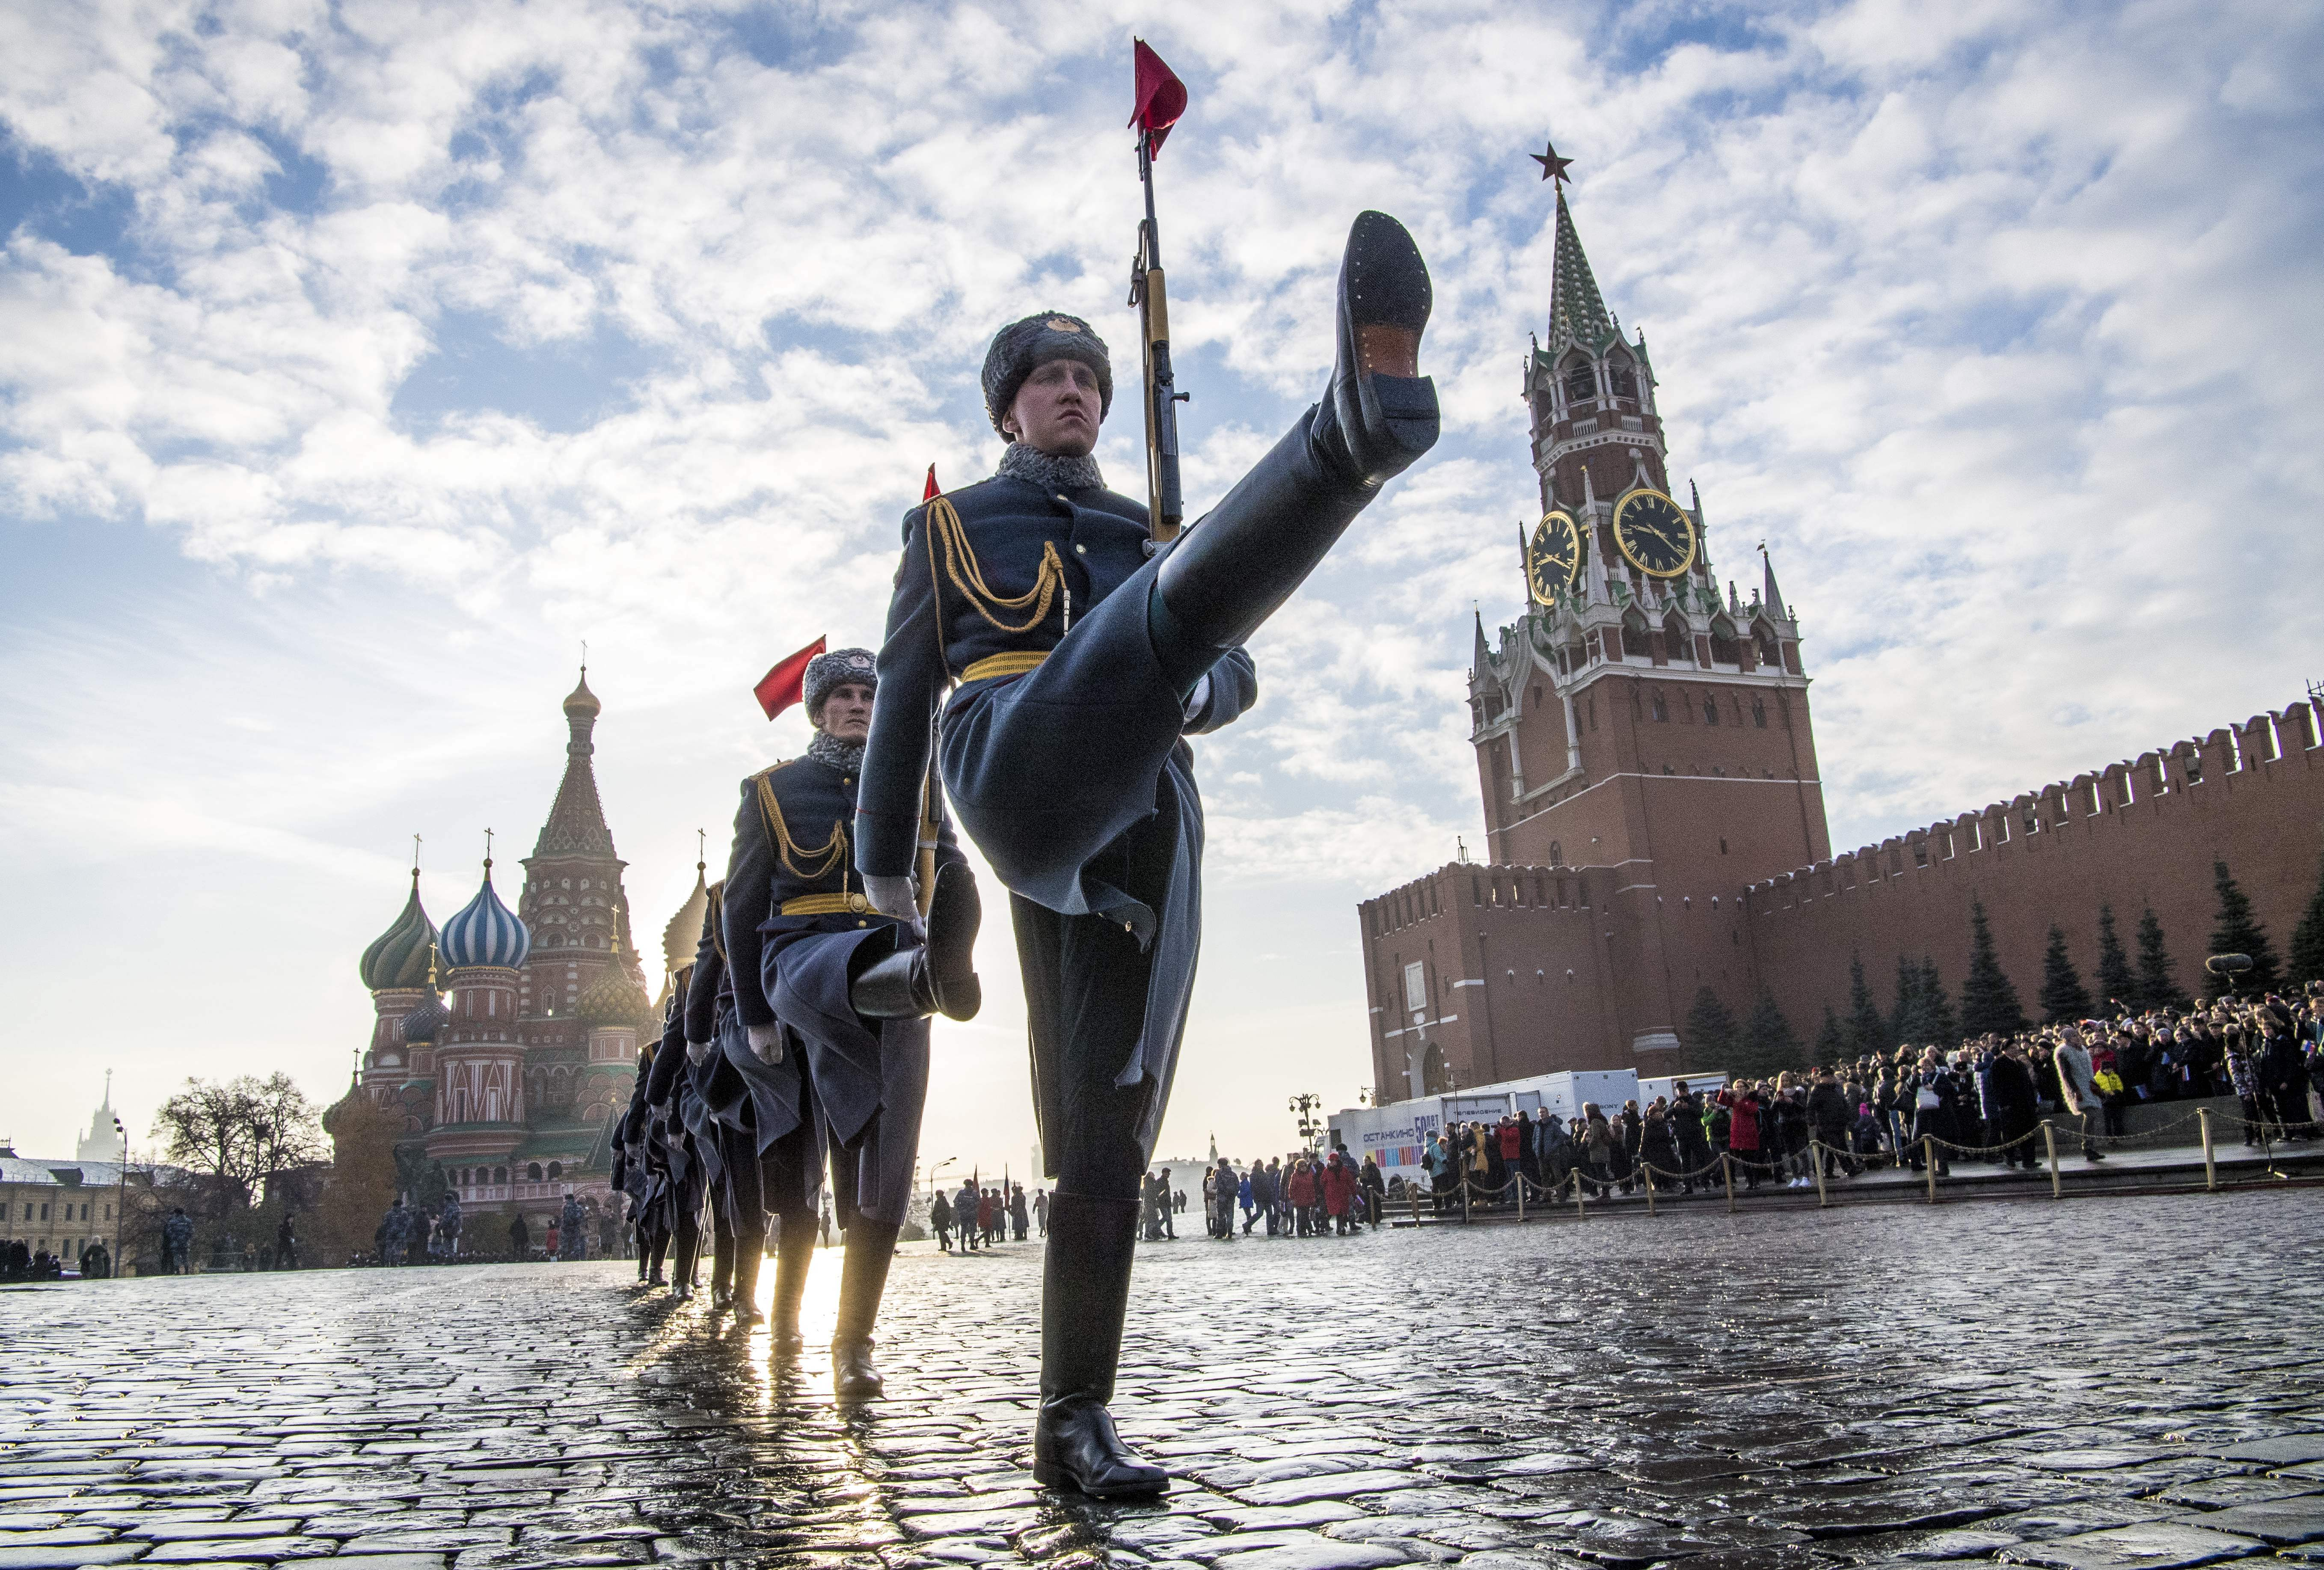 Russian soldiers march in Red Square, Moscow, Russia.